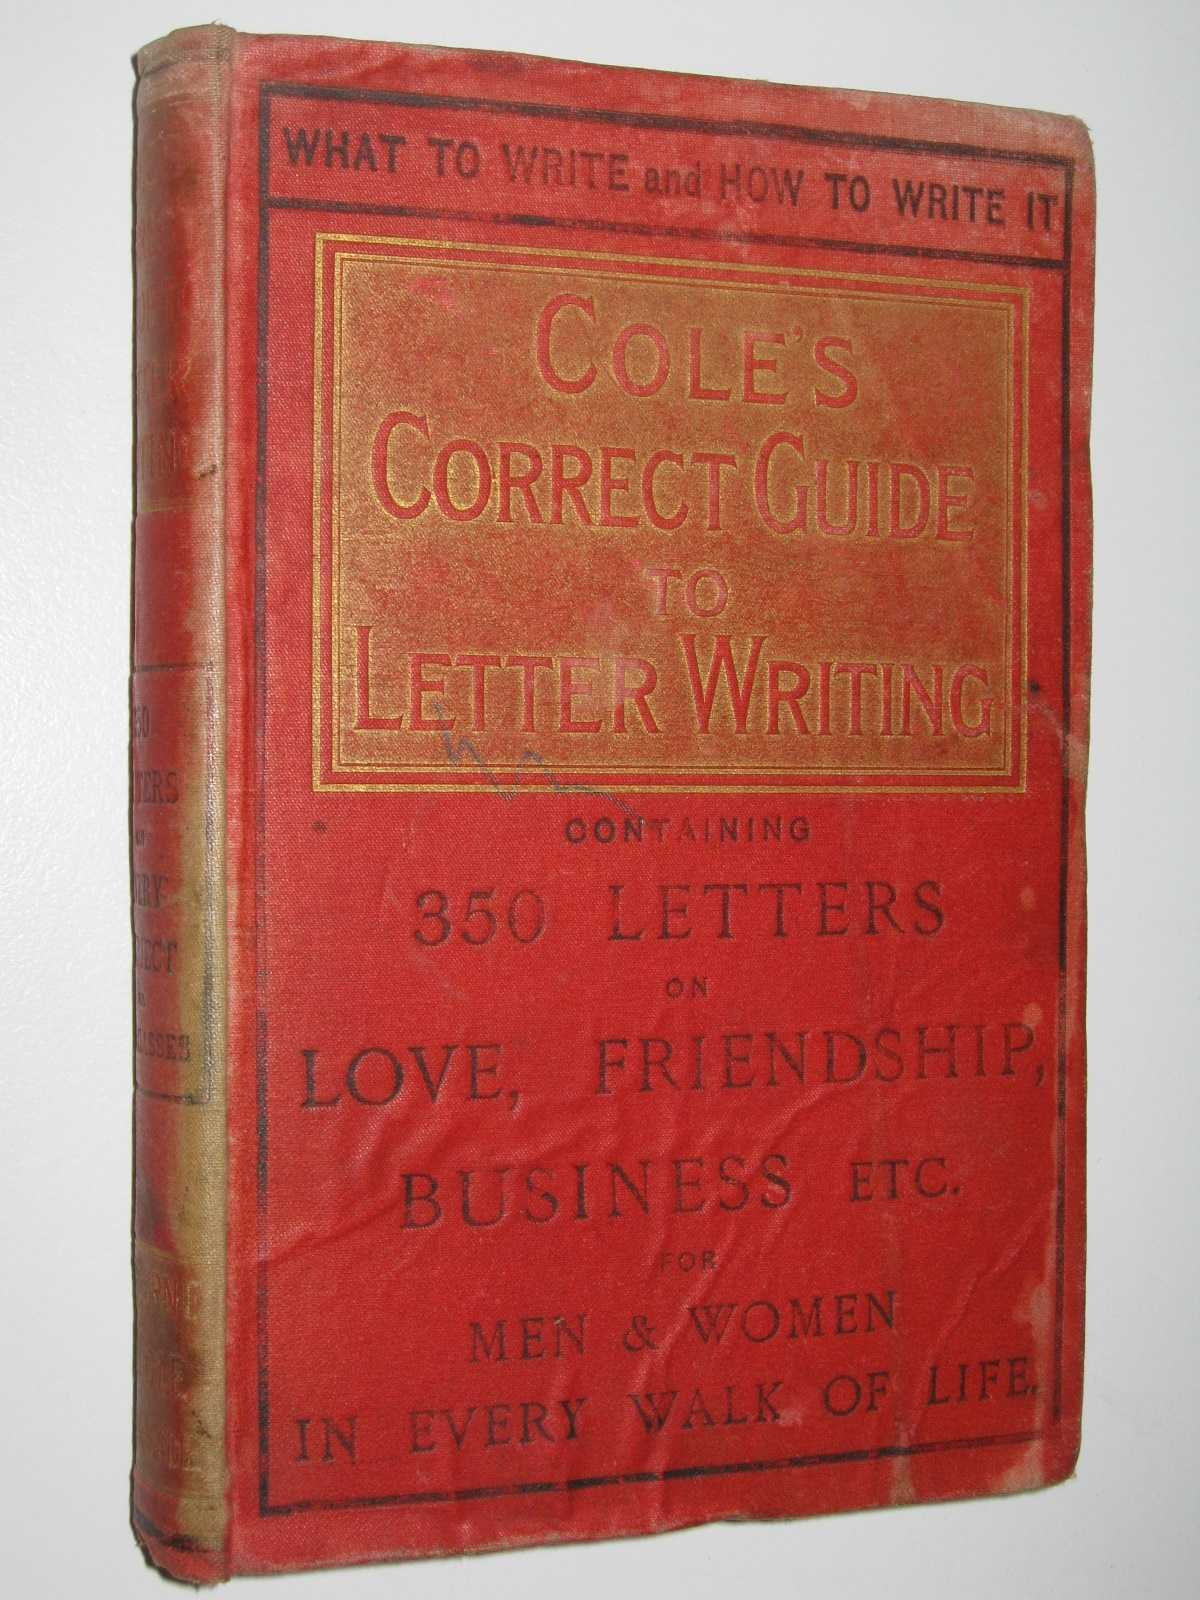 Image for Cole's Correct Guide to Letter Writing : Containing 350 letters on love, friendship, business etc for men and women in very walk of life